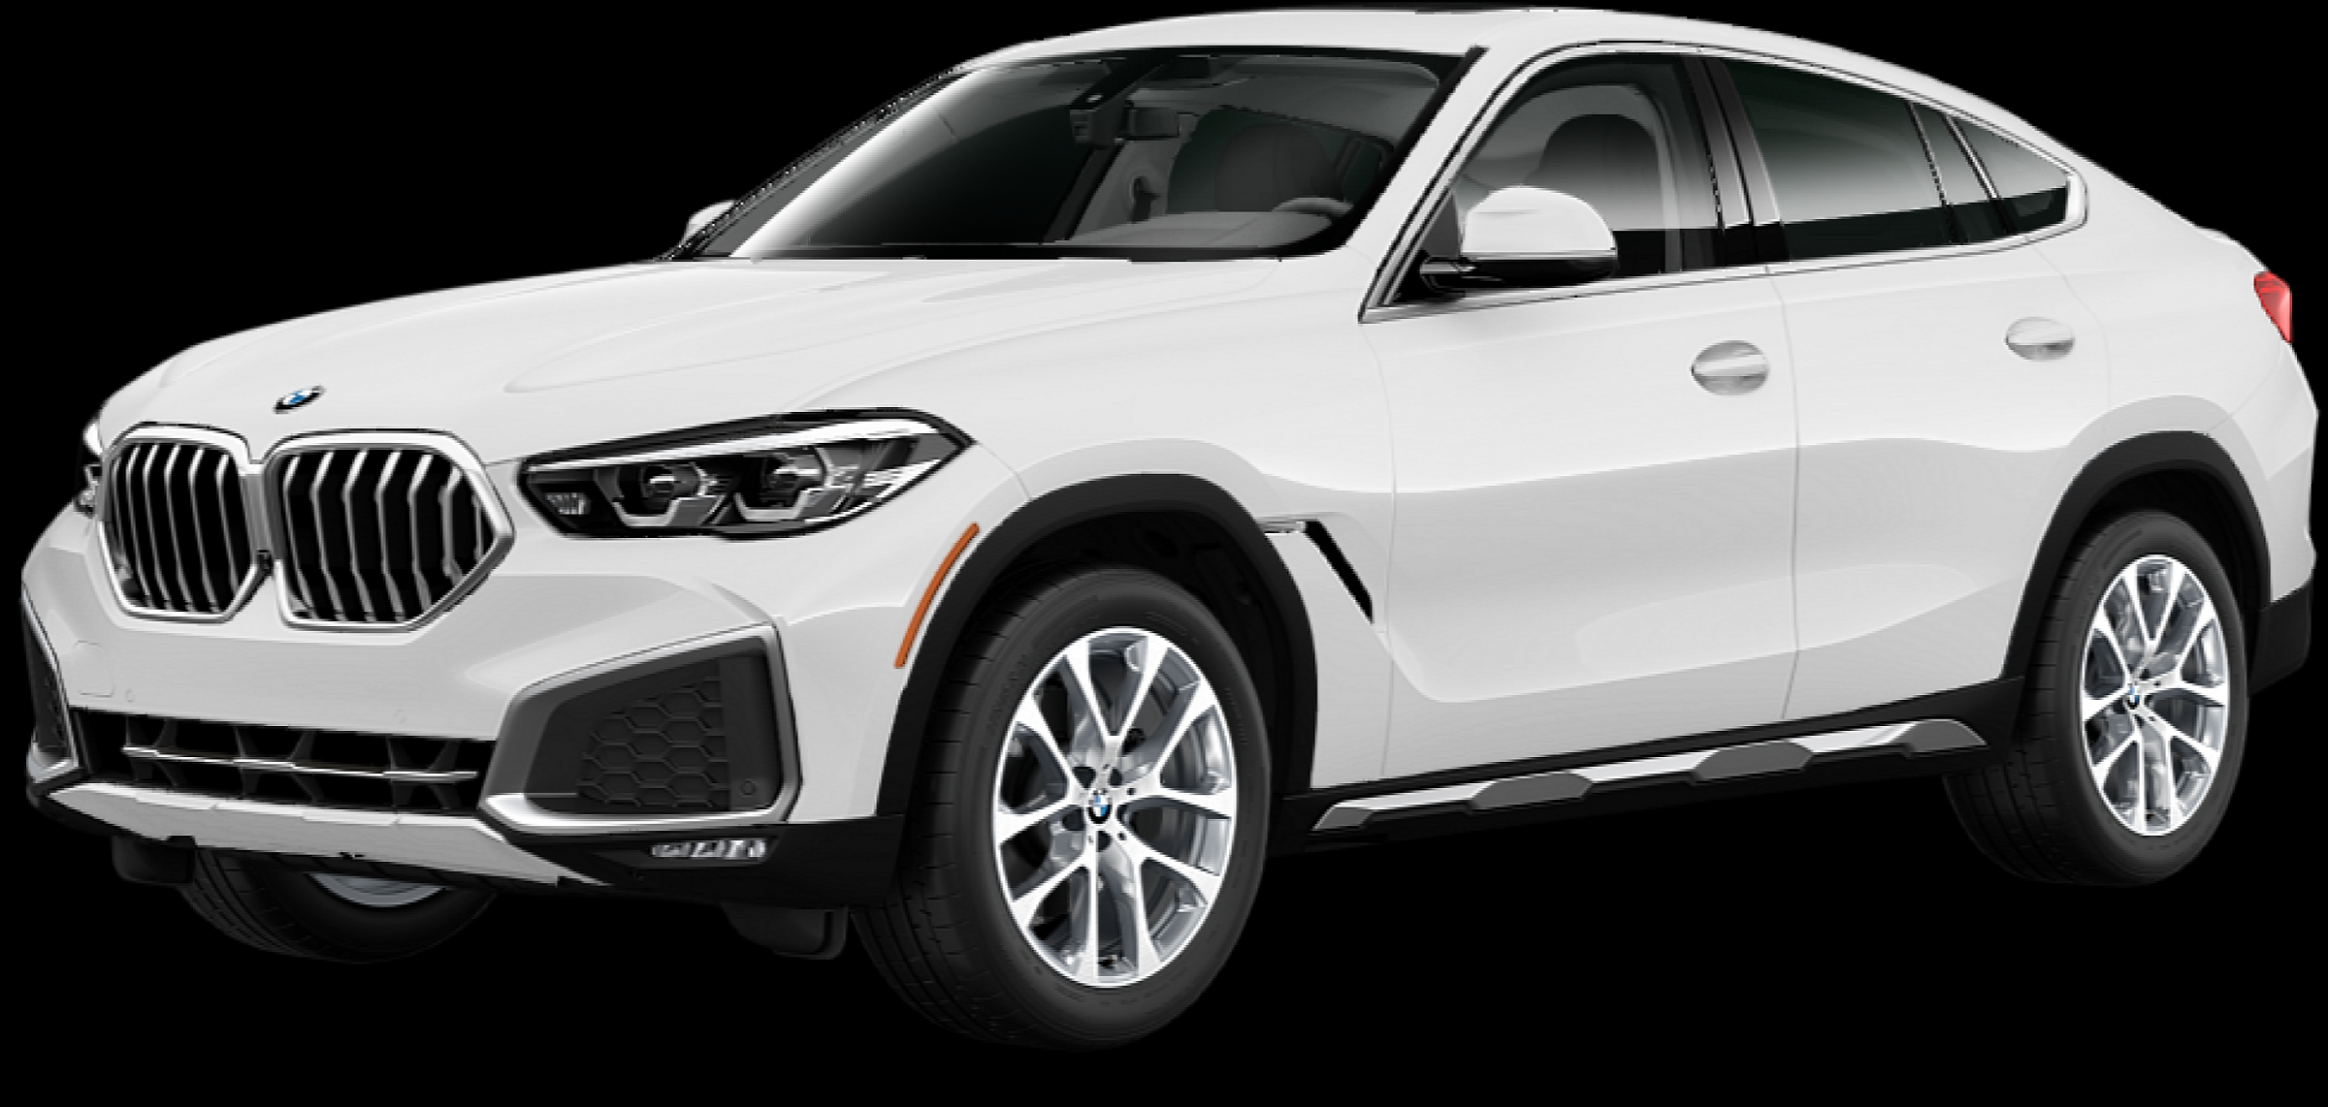 5 BMW X5 Incentives, Specials & Offers in Tucson AZ | 2020 BMW Incentives